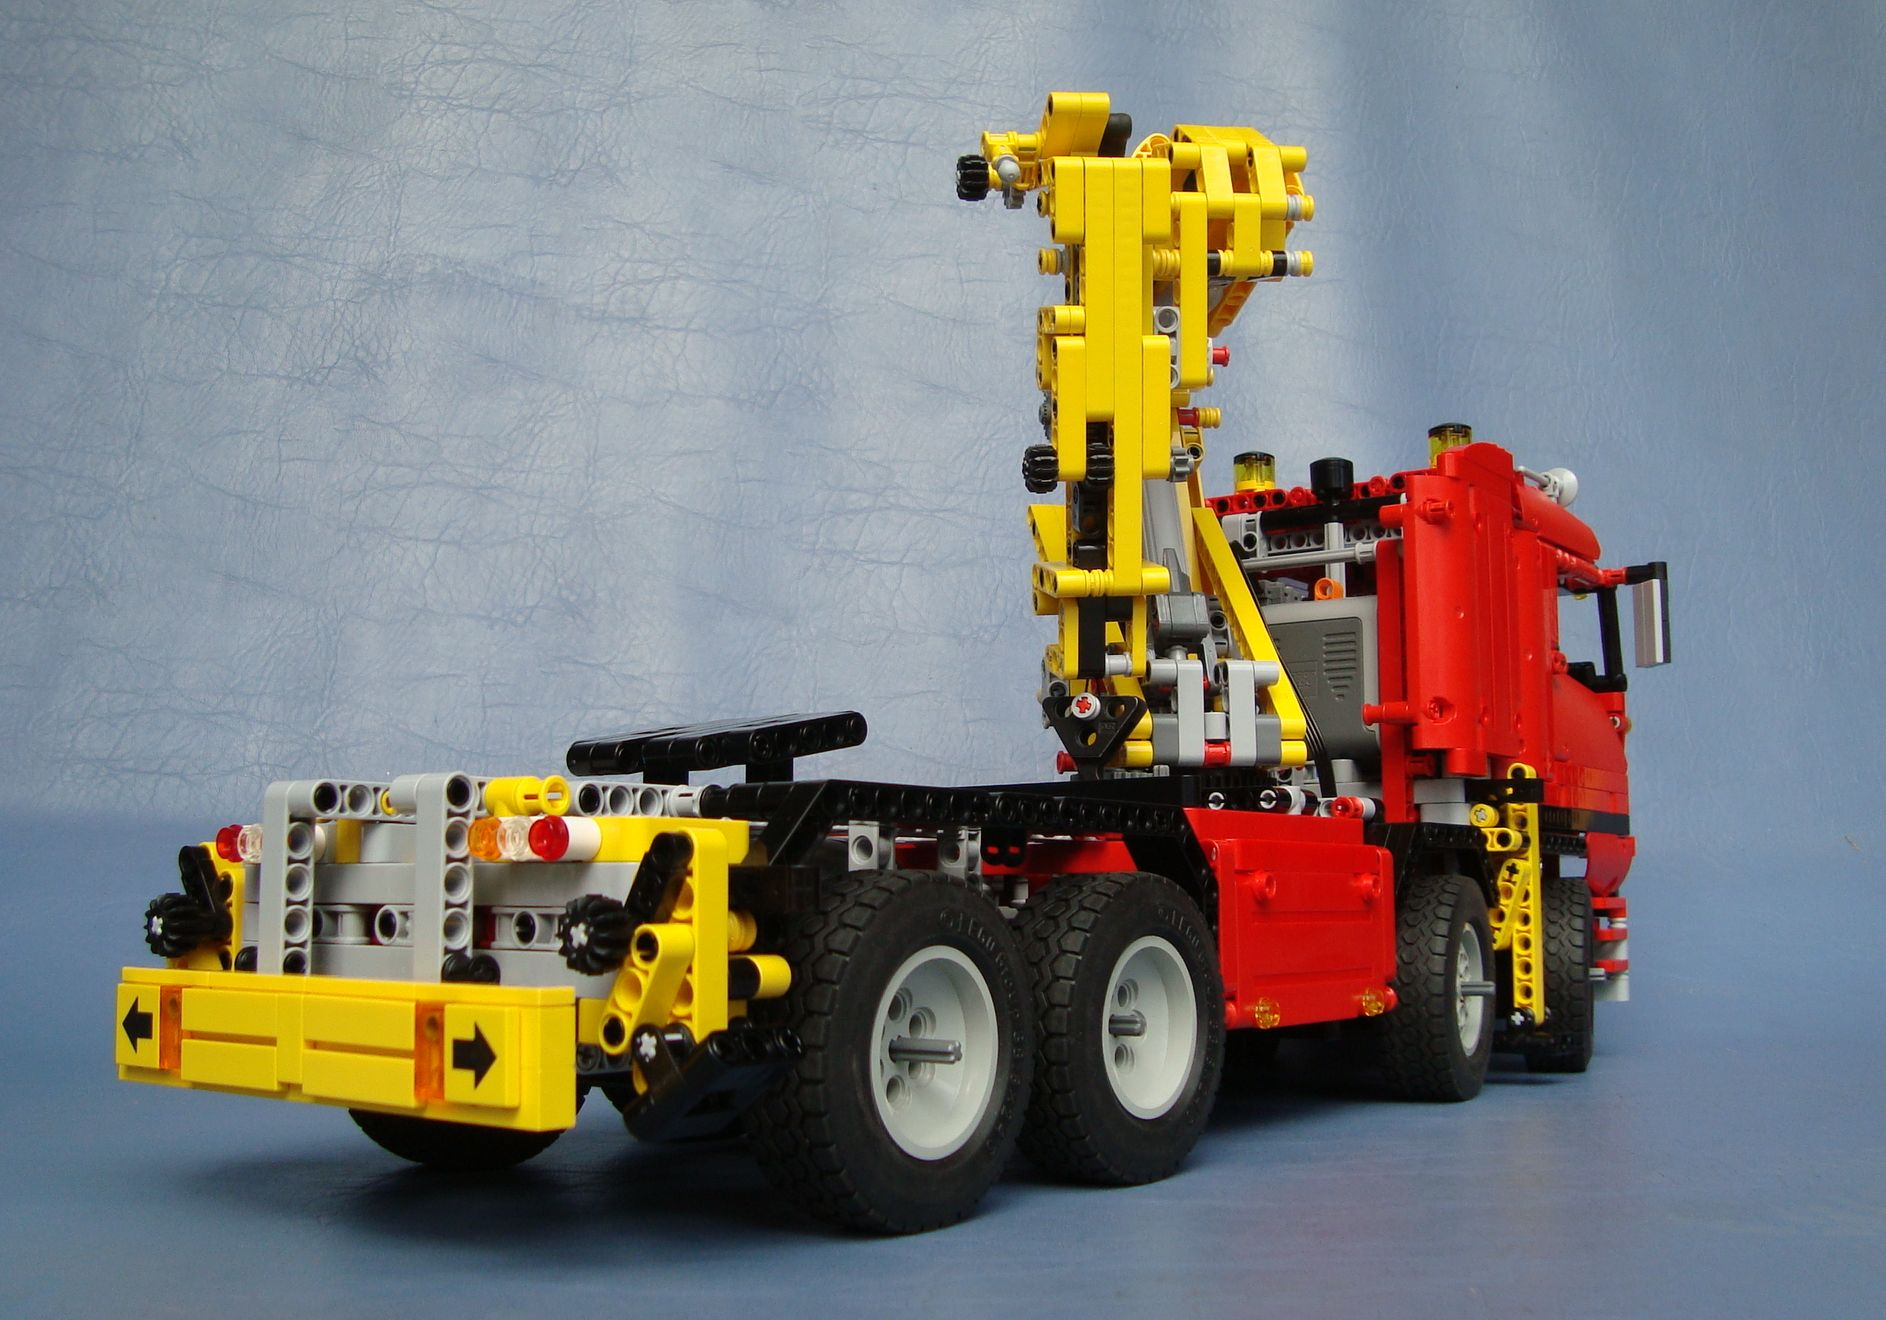 technic 8258 crane truck brickipedia a lego wiki. Black Bedroom Furniture Sets. Home Design Ideas